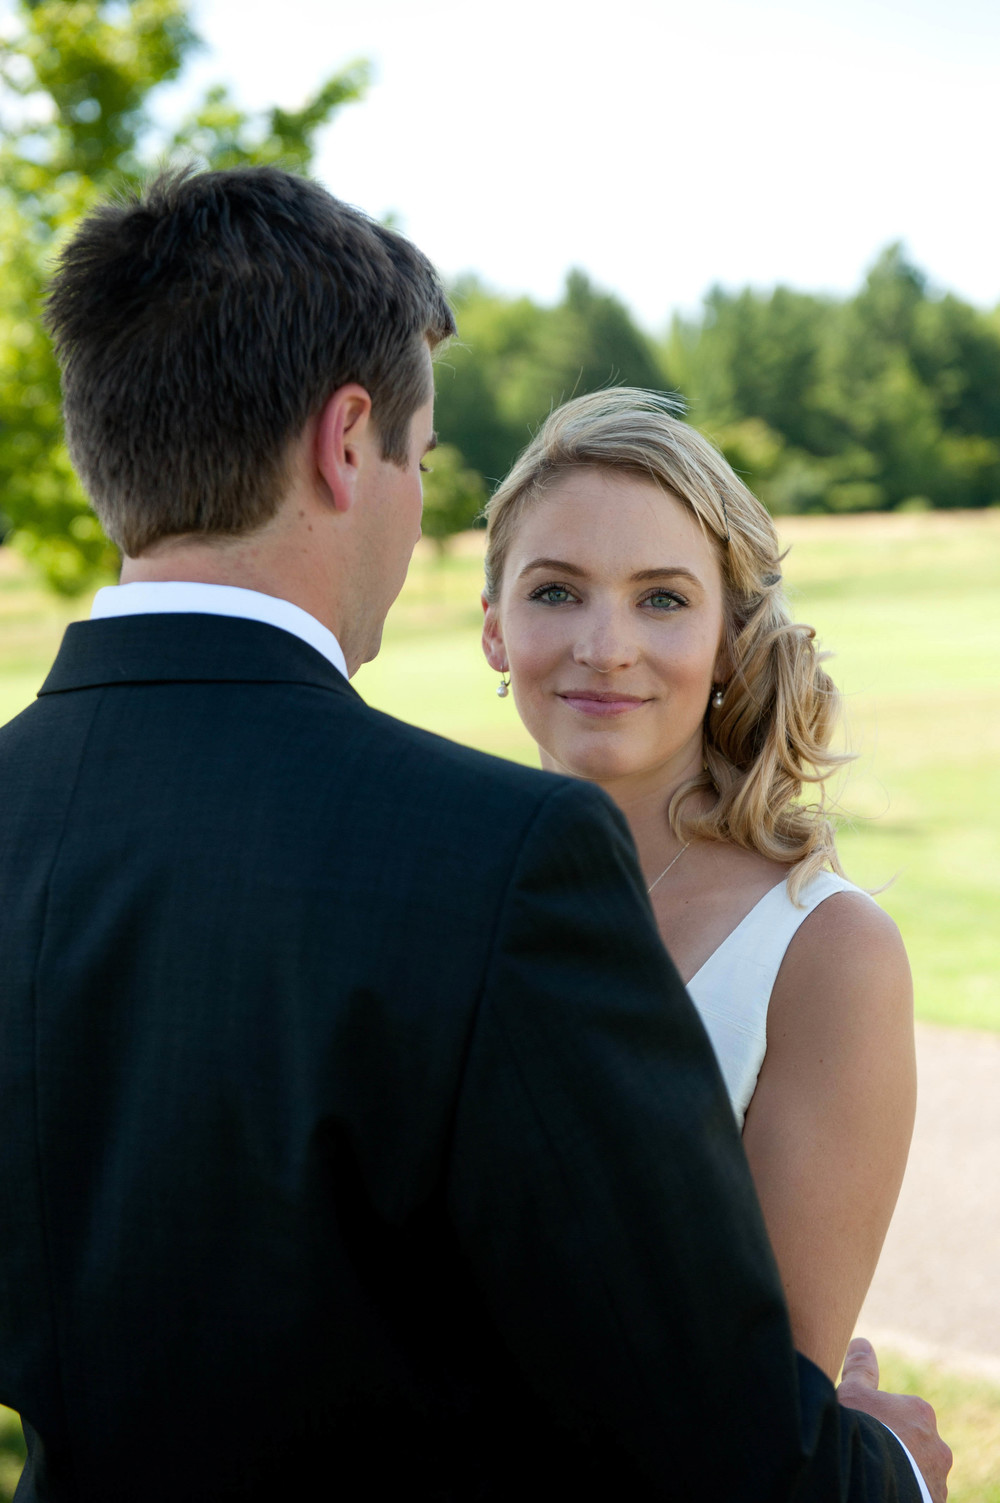 Vermont_National_Golf_Course_Wedding-5.jpg